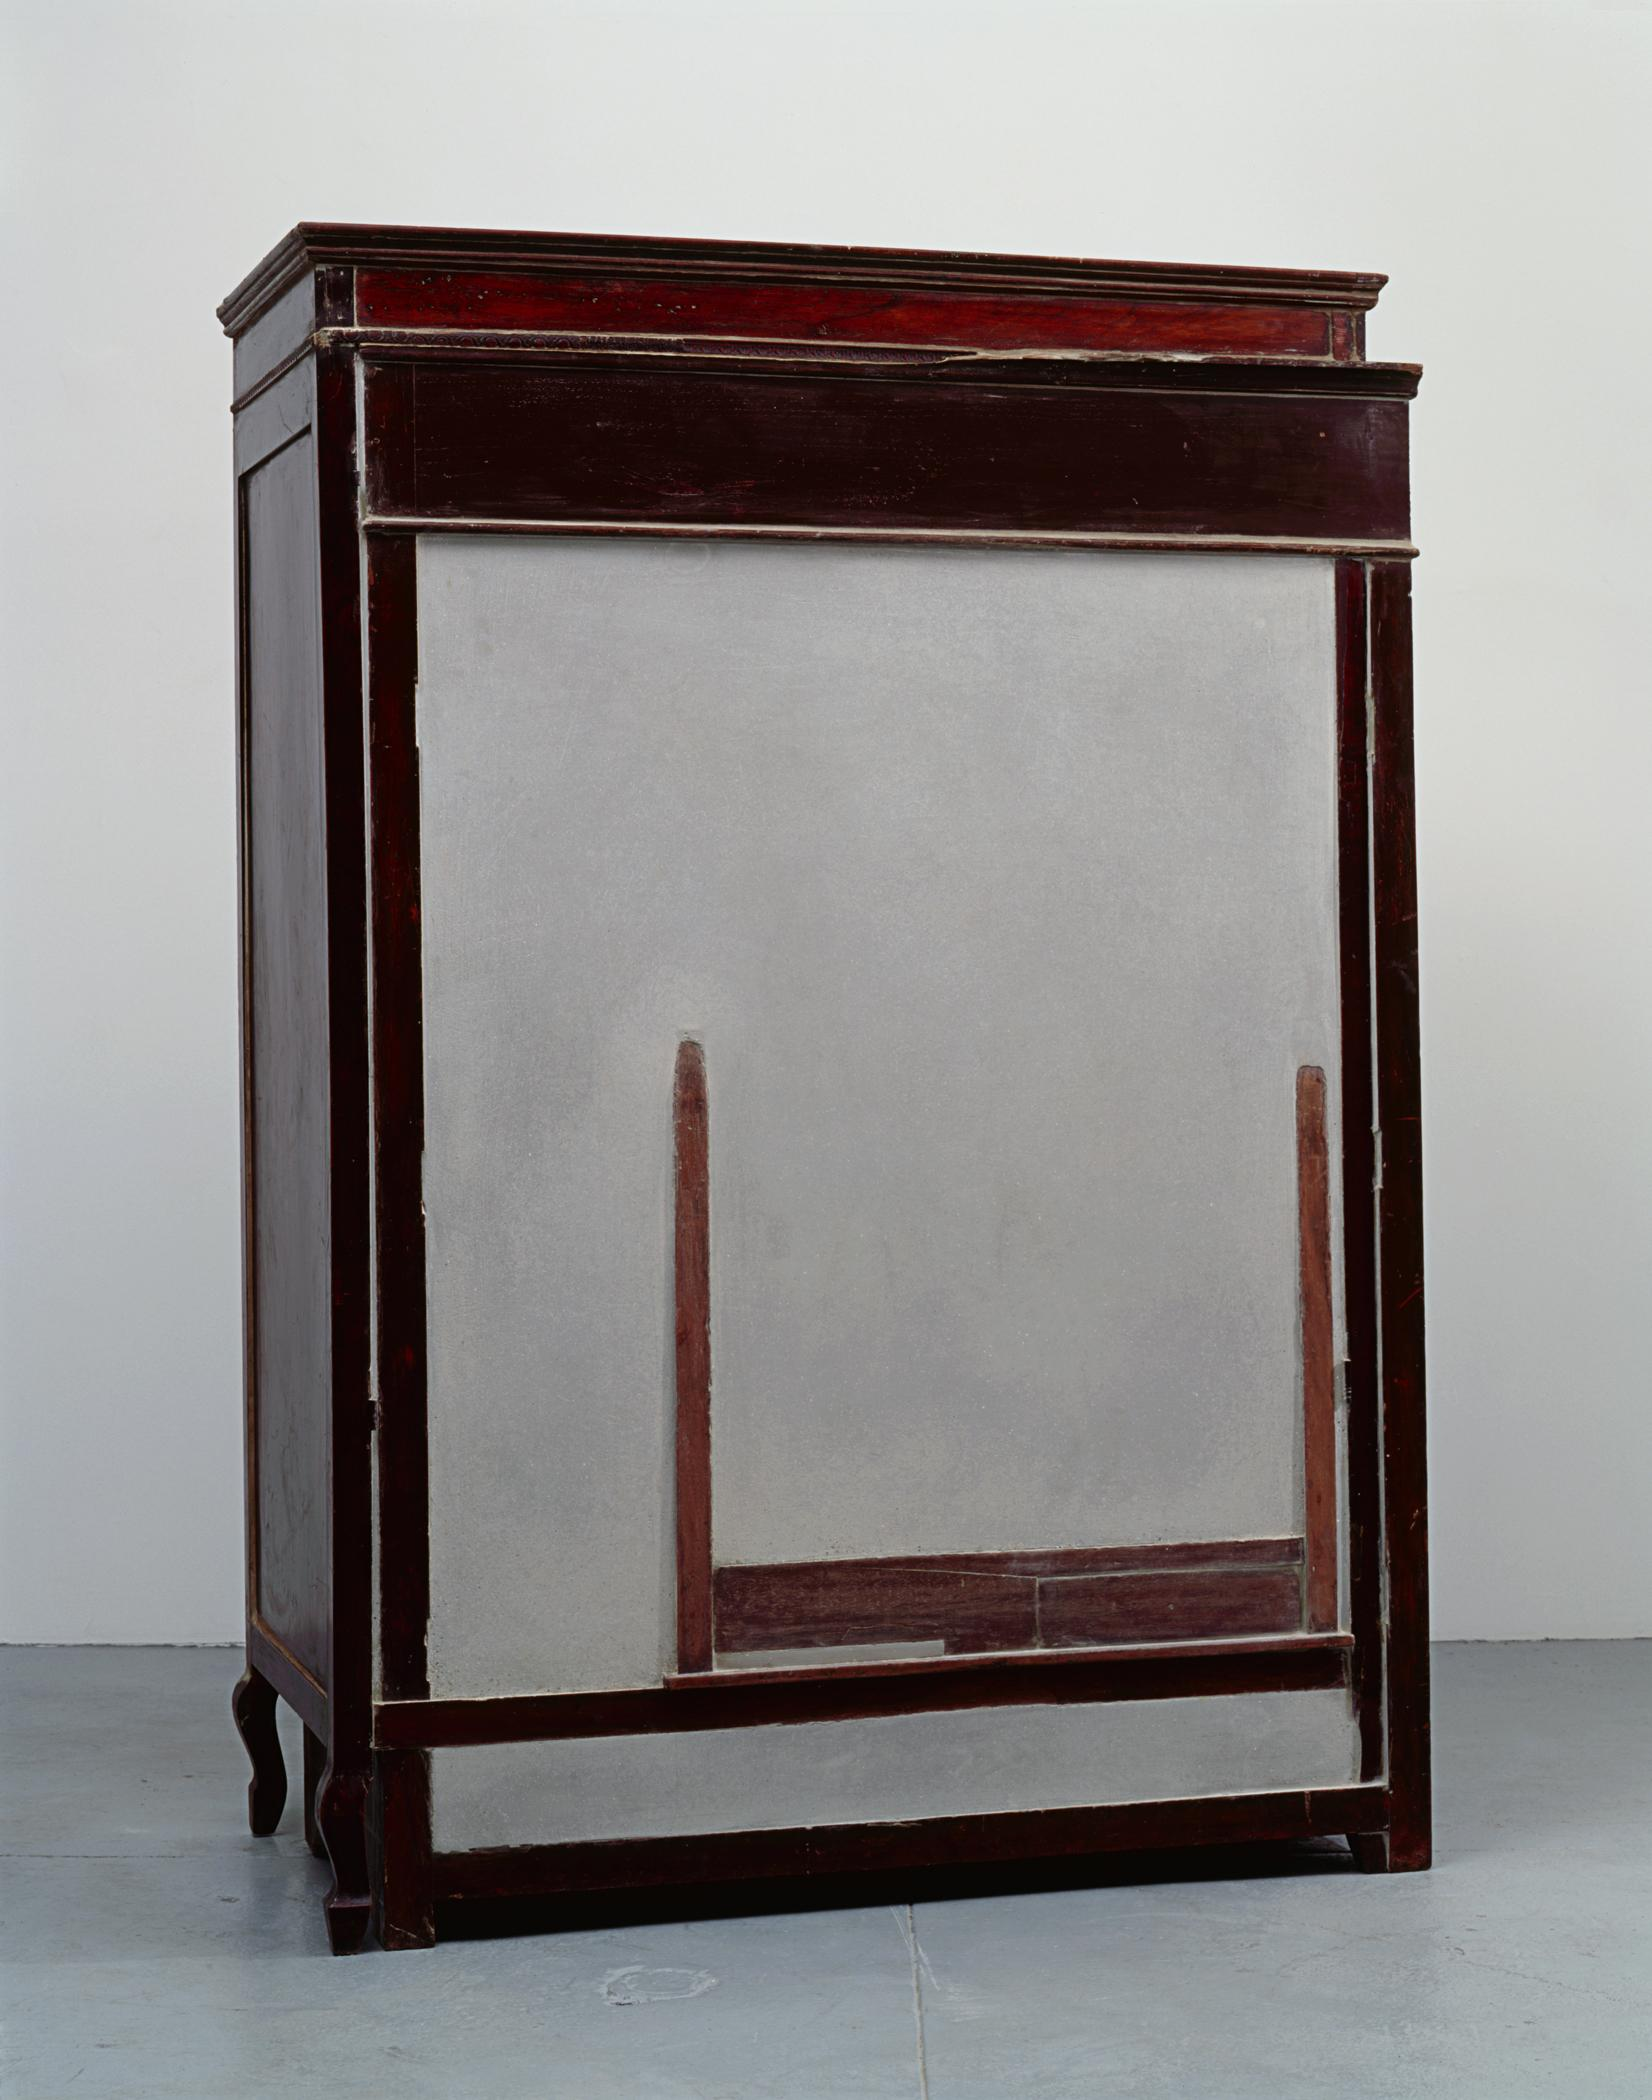 A wooden cabinet filed with cement has a barely visible second piece of furniture peeking out the surface.